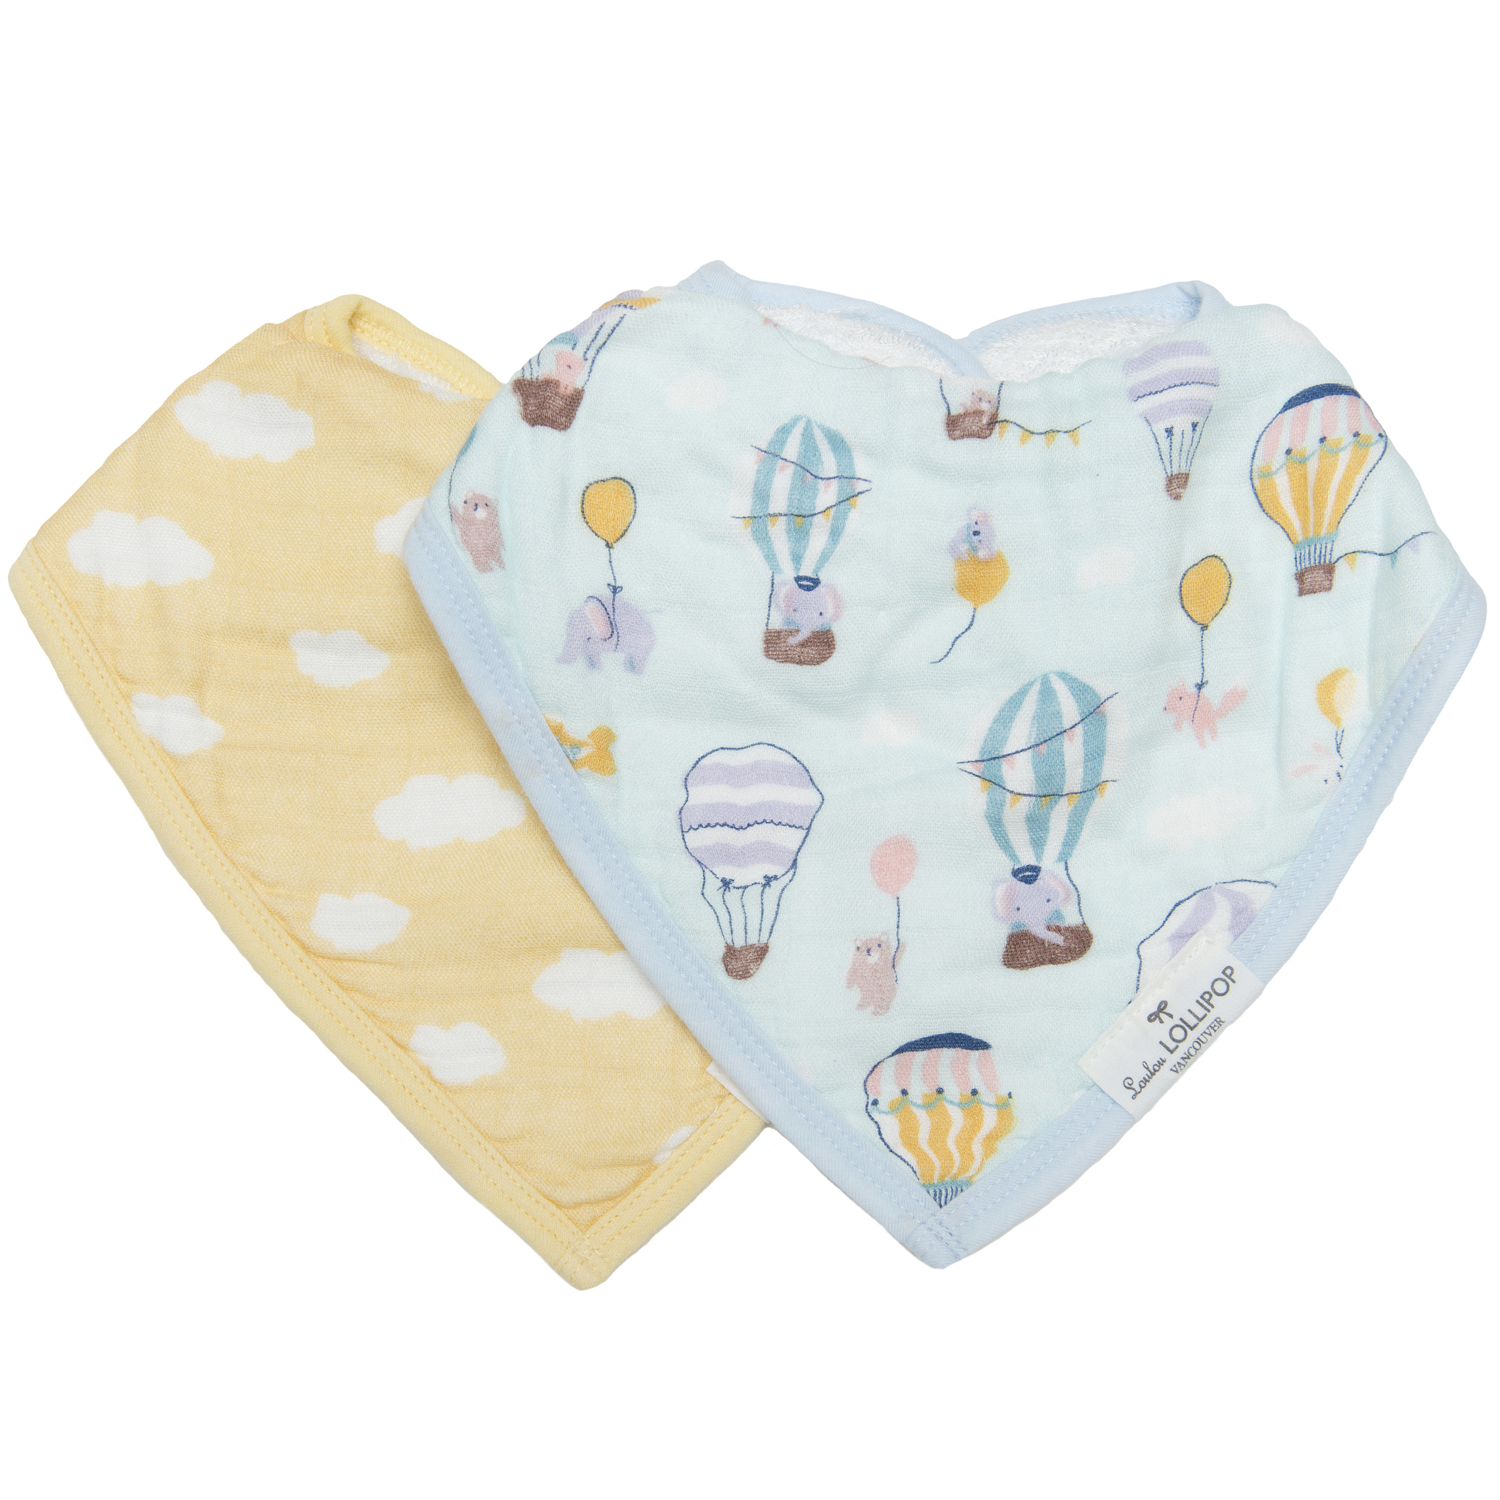 Loulou Lollipop Muslin Bandana Bib Set - Up Up Away